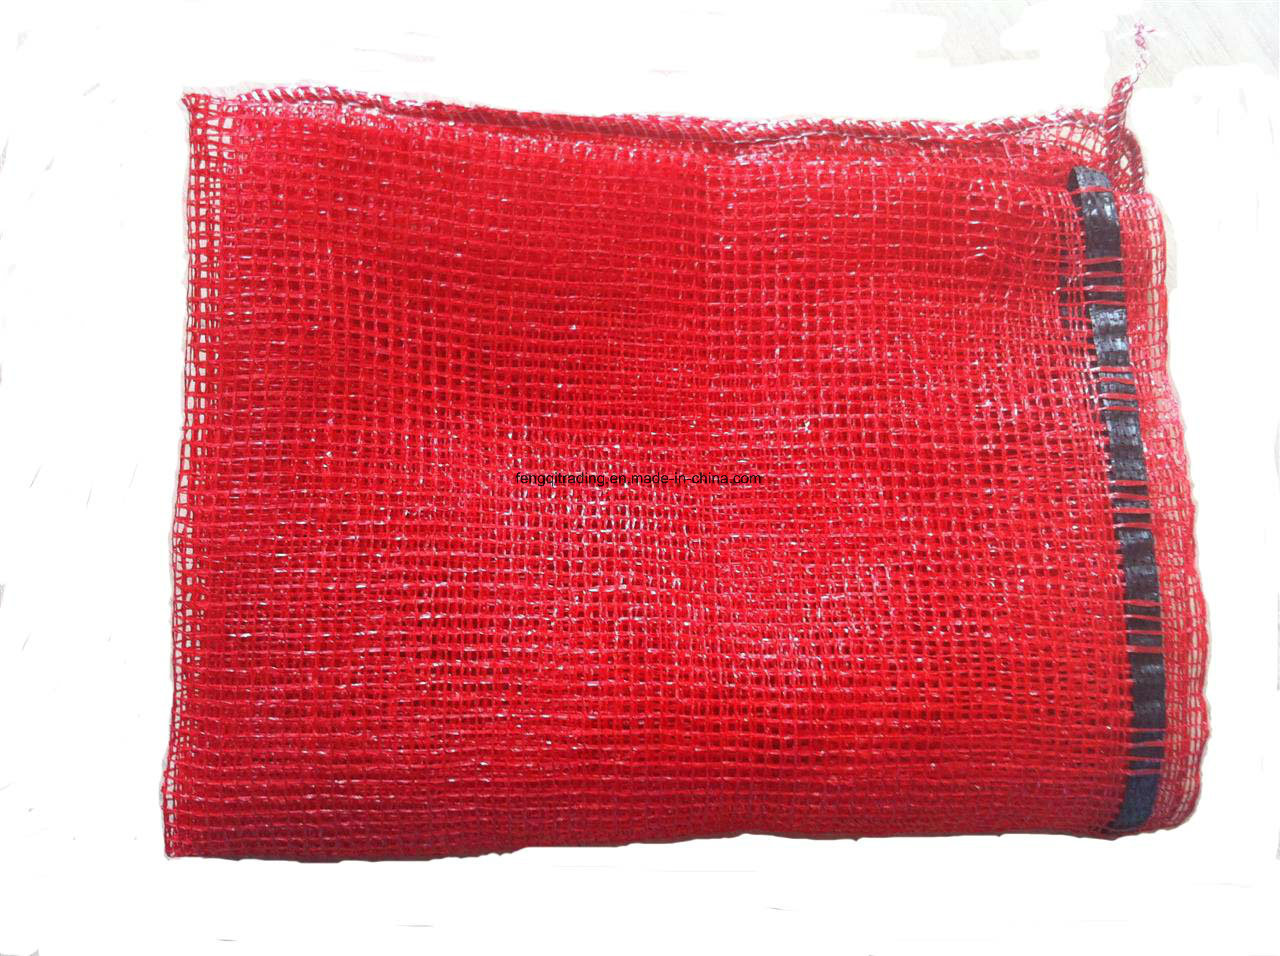 Wholesale Drawstring Mesh Bags and 50kg PP Bags for Onion Potato and Firewood L-Sewing Mesh Bag for Firewood